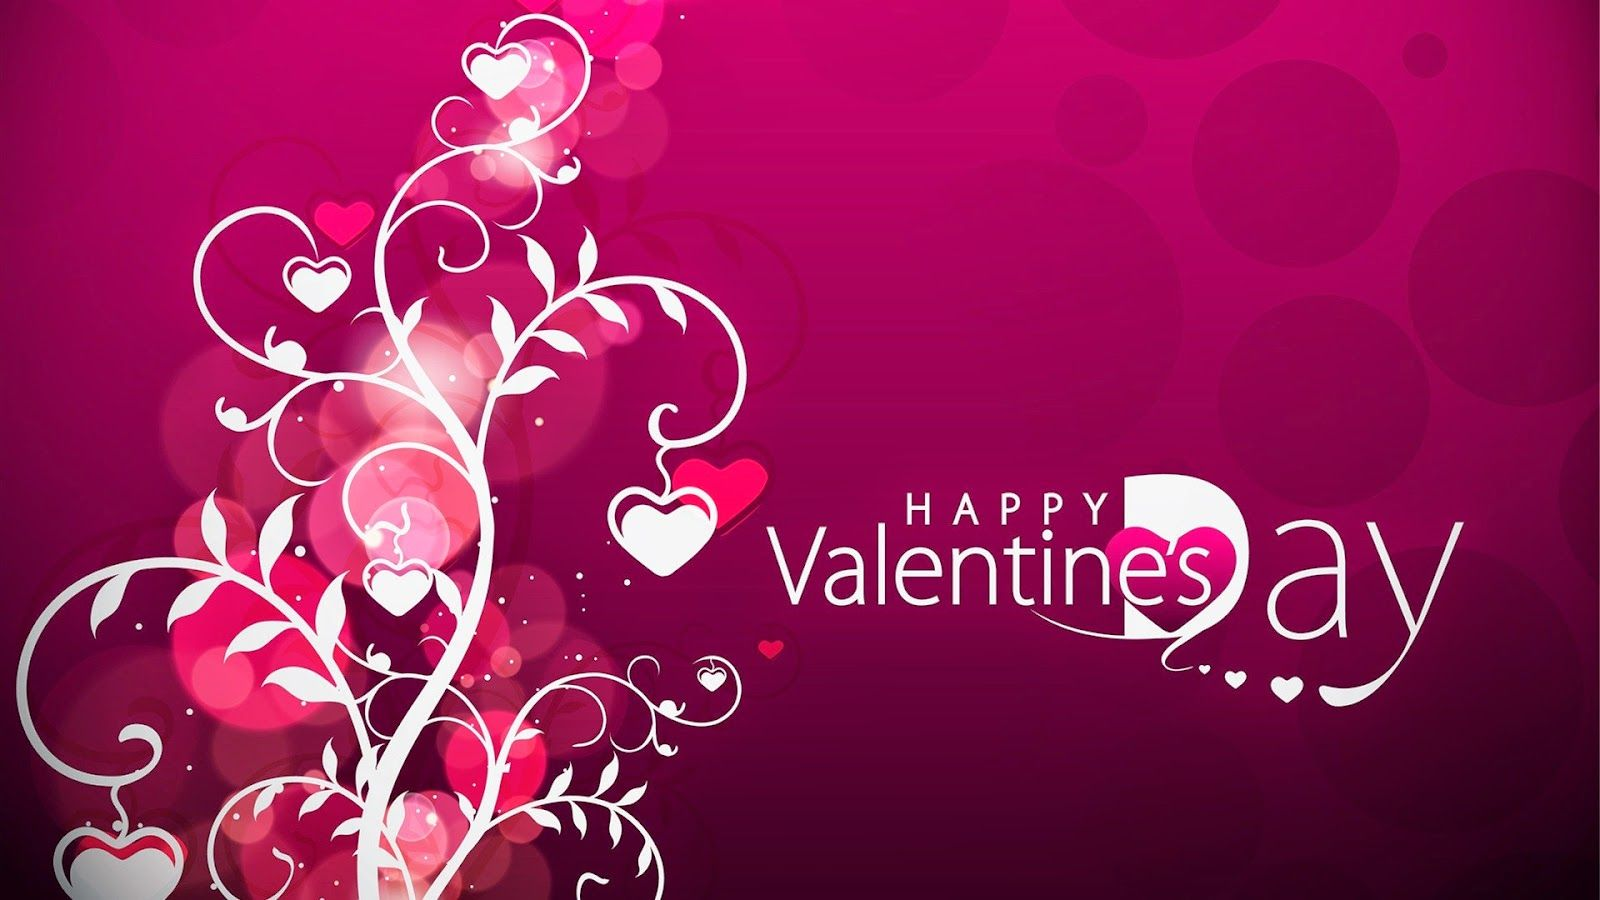 15 new valentine's day desktop wallpapers for 2015   ♥hearts